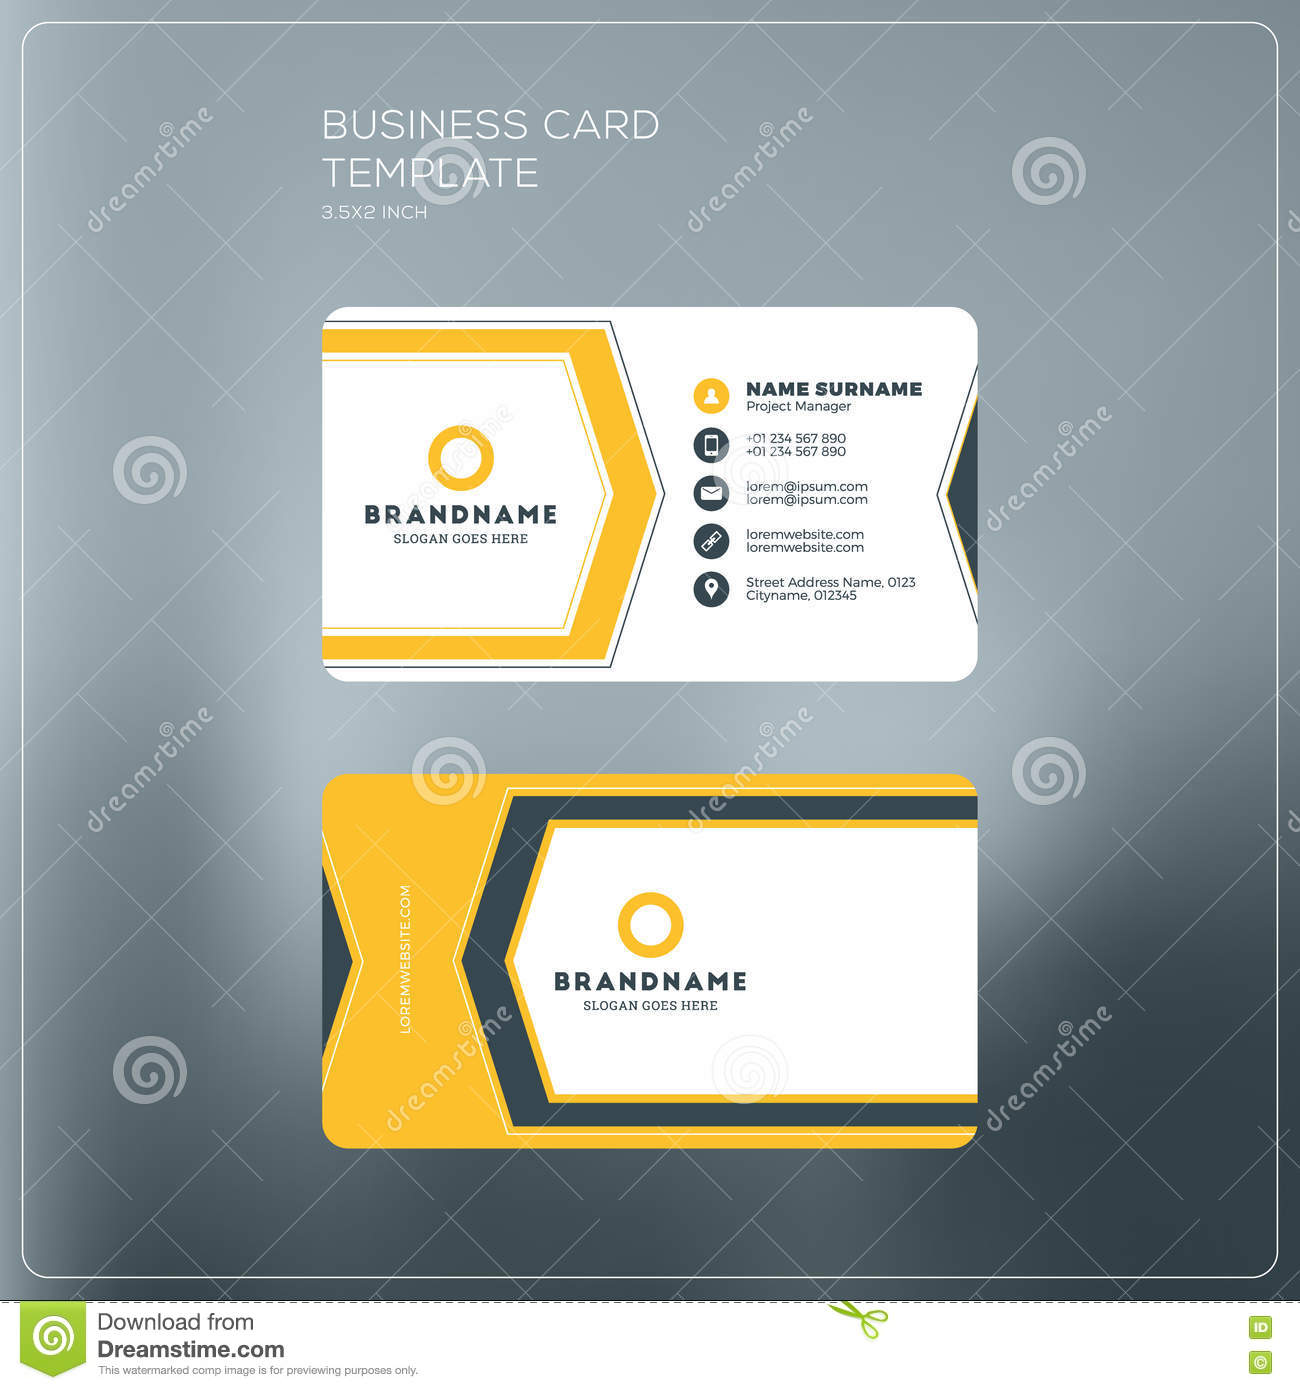 Corporate business card print template personal visiting card stock corporate business card print template personal visiting card royalty free vector cheaphphosting Image collections